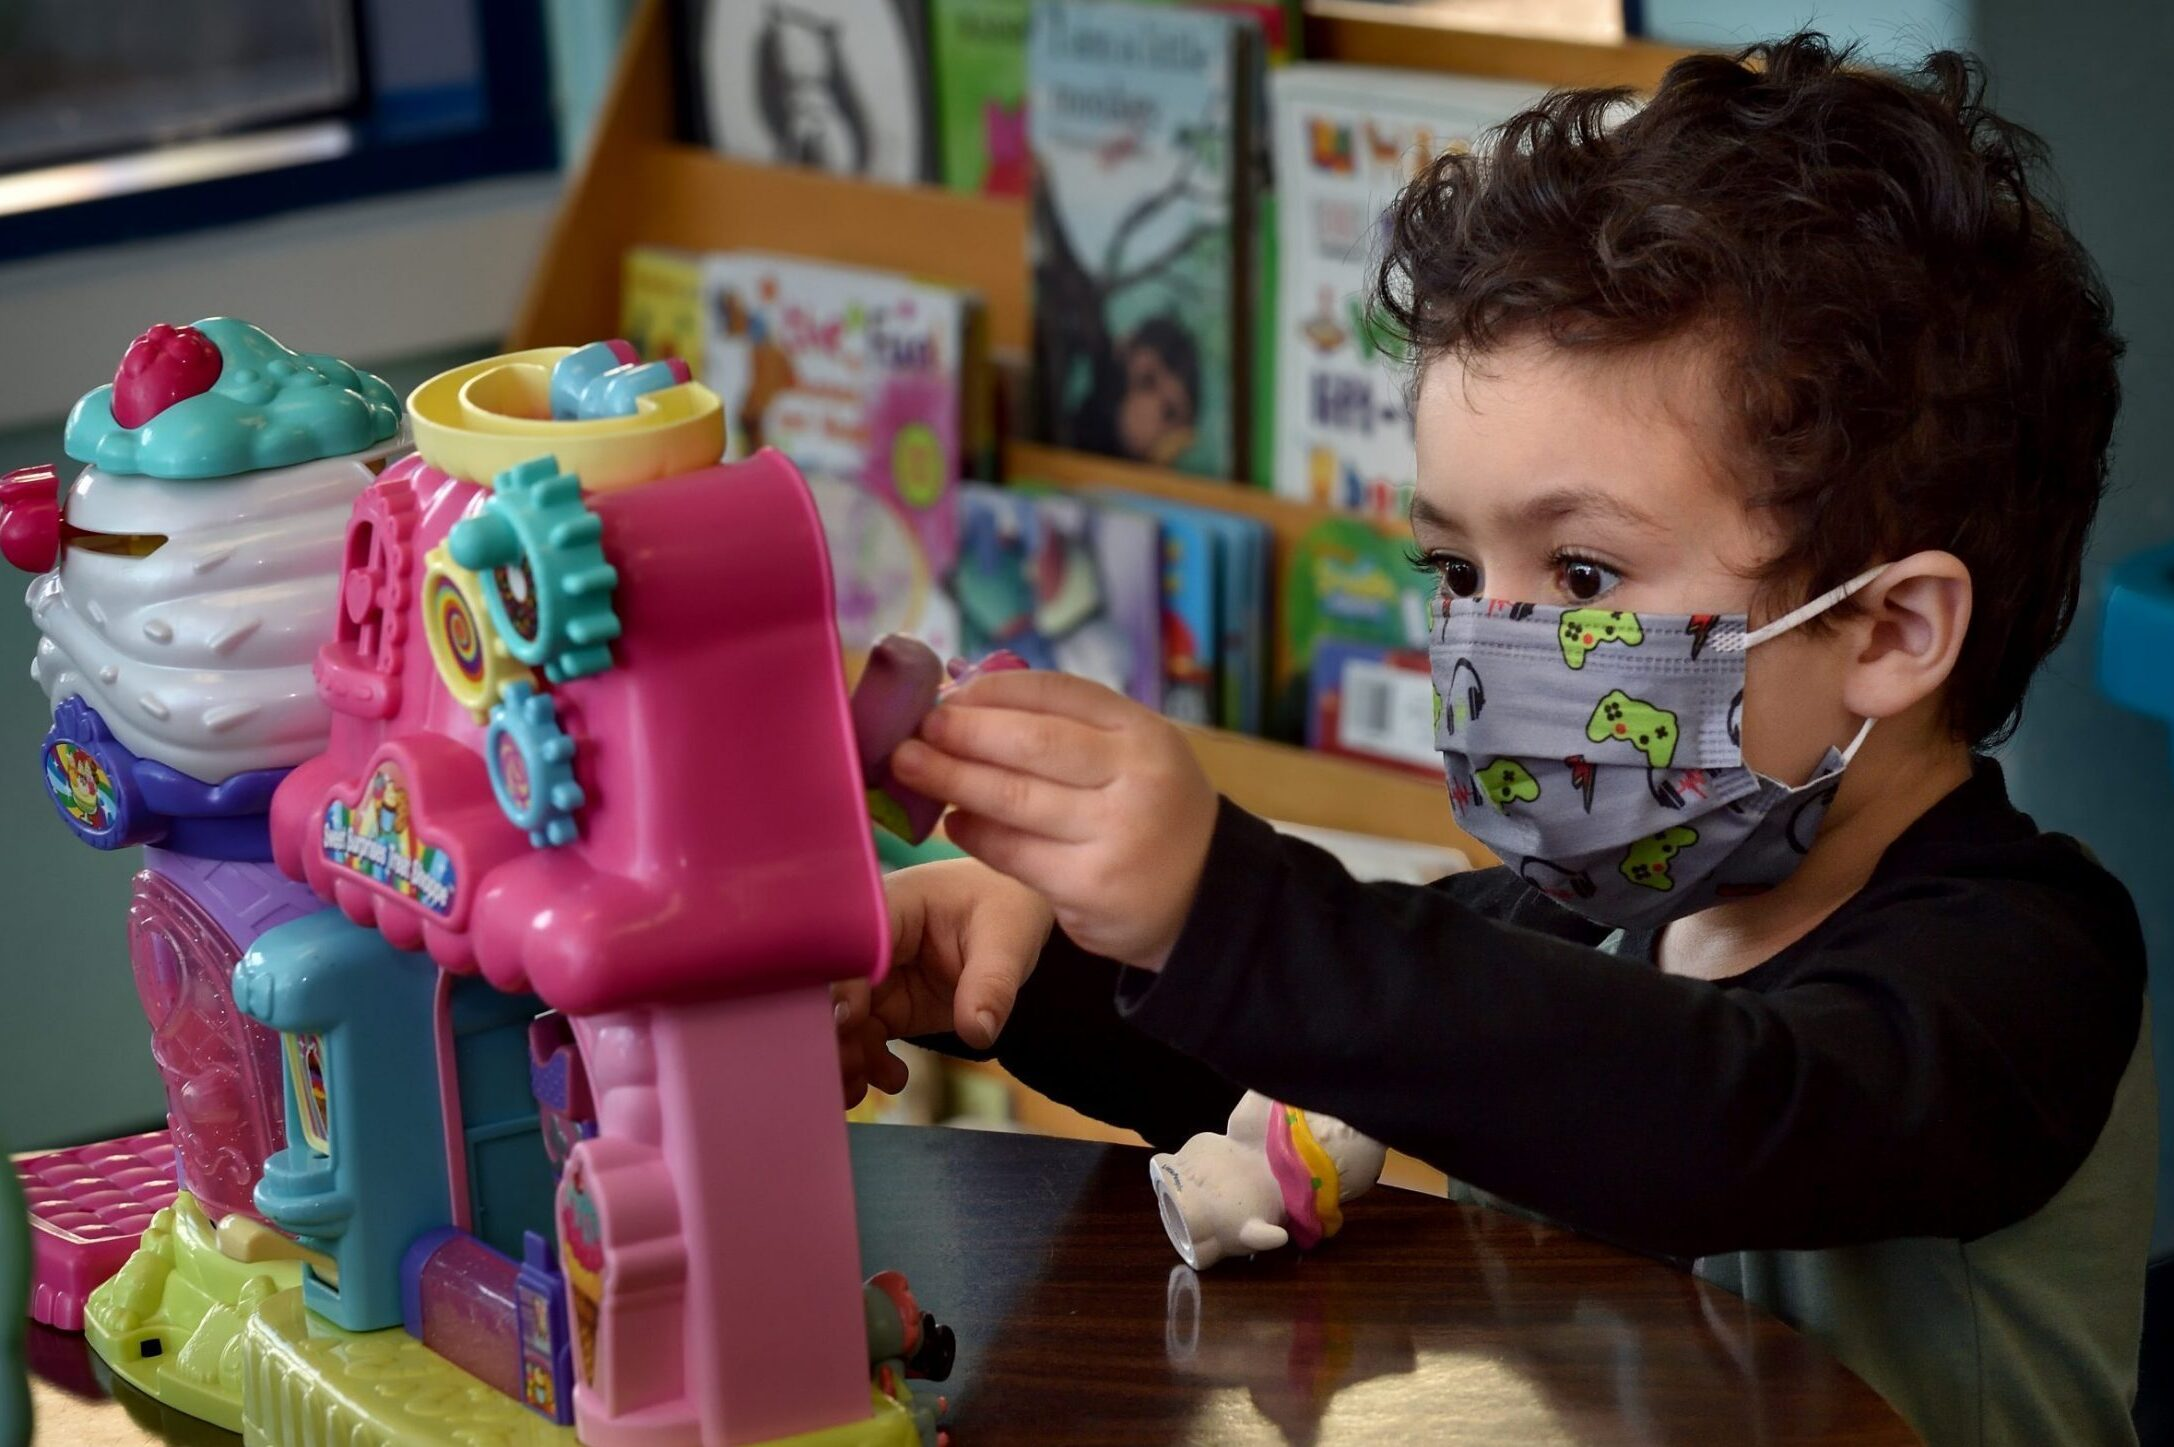 a young boy wearing a mask plays with toys in a preschool